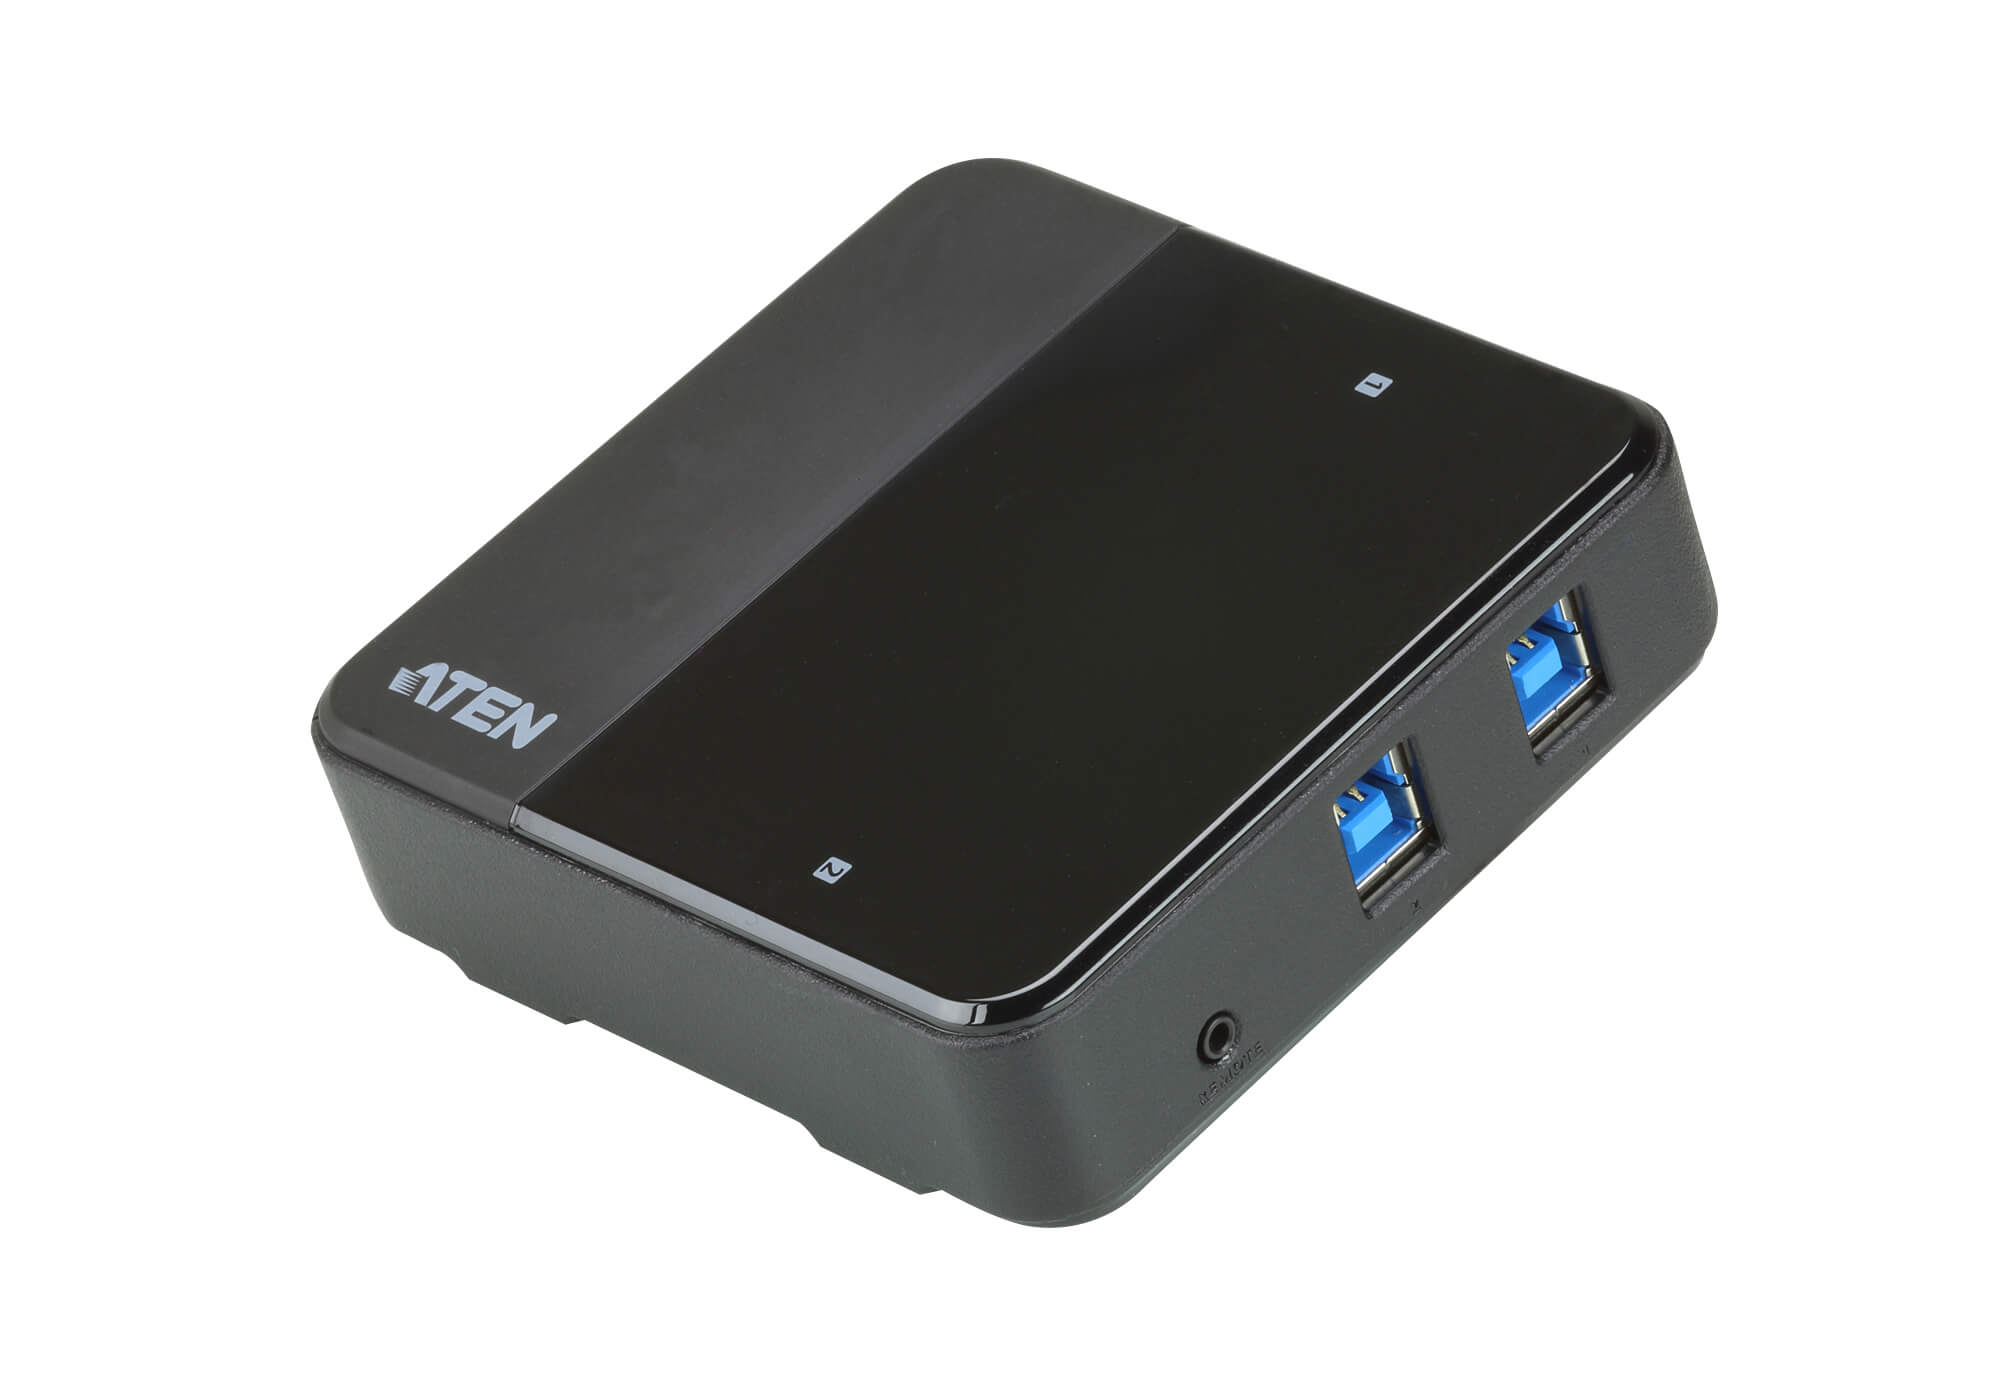 2 x 4 USB 3.2 Gen1 Peripheral Sharing Switch-2